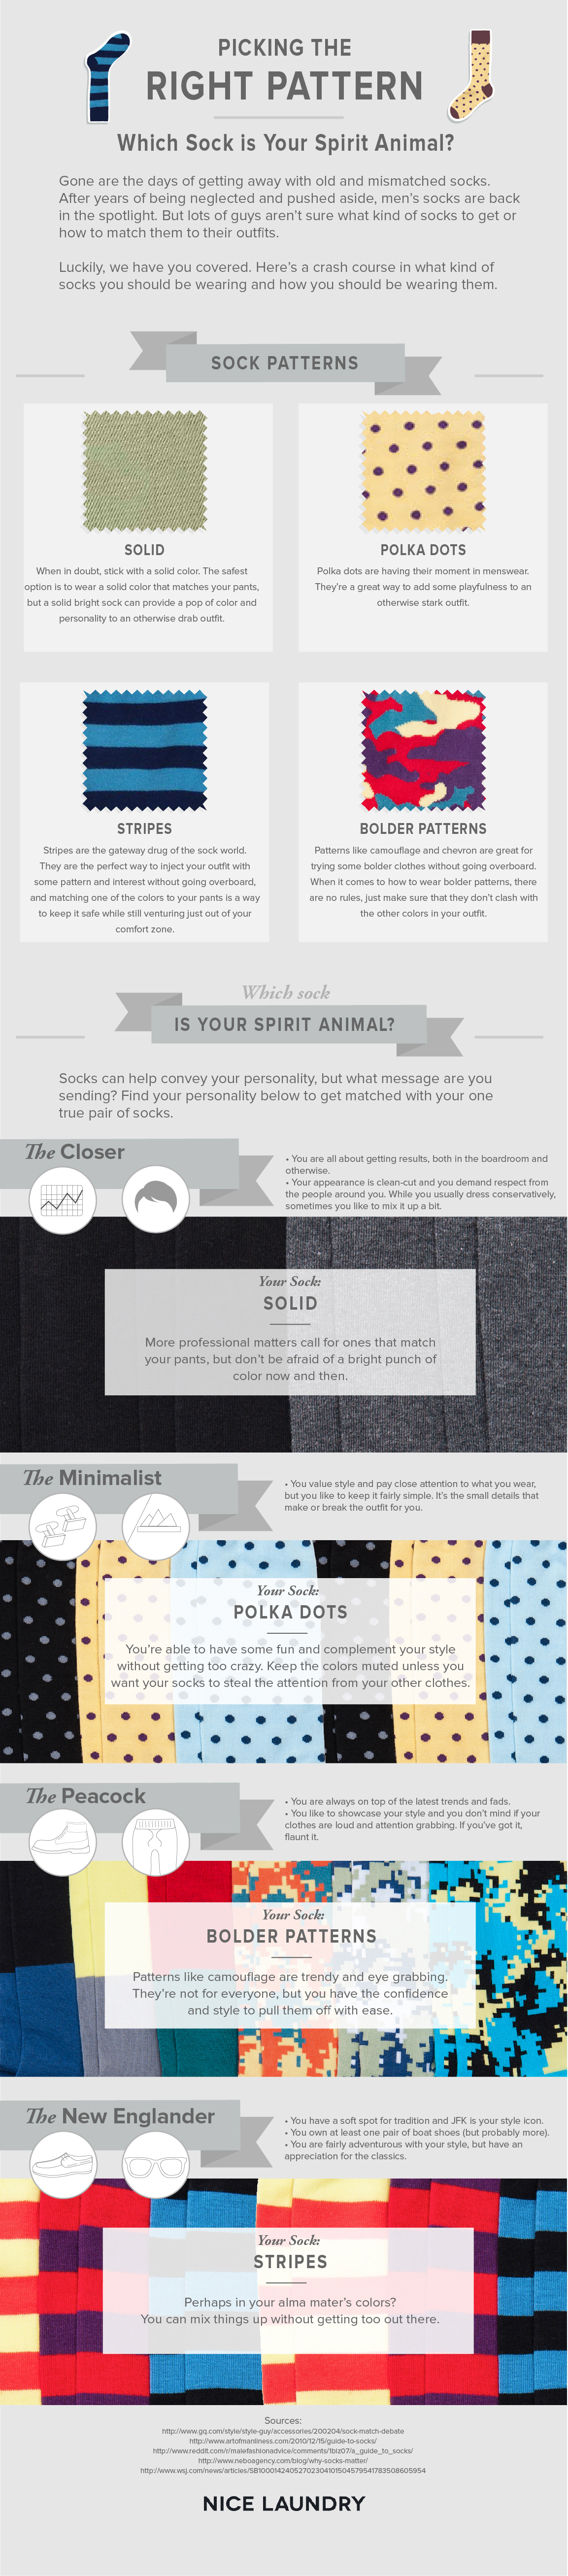 Picking the Right Sock Pattern